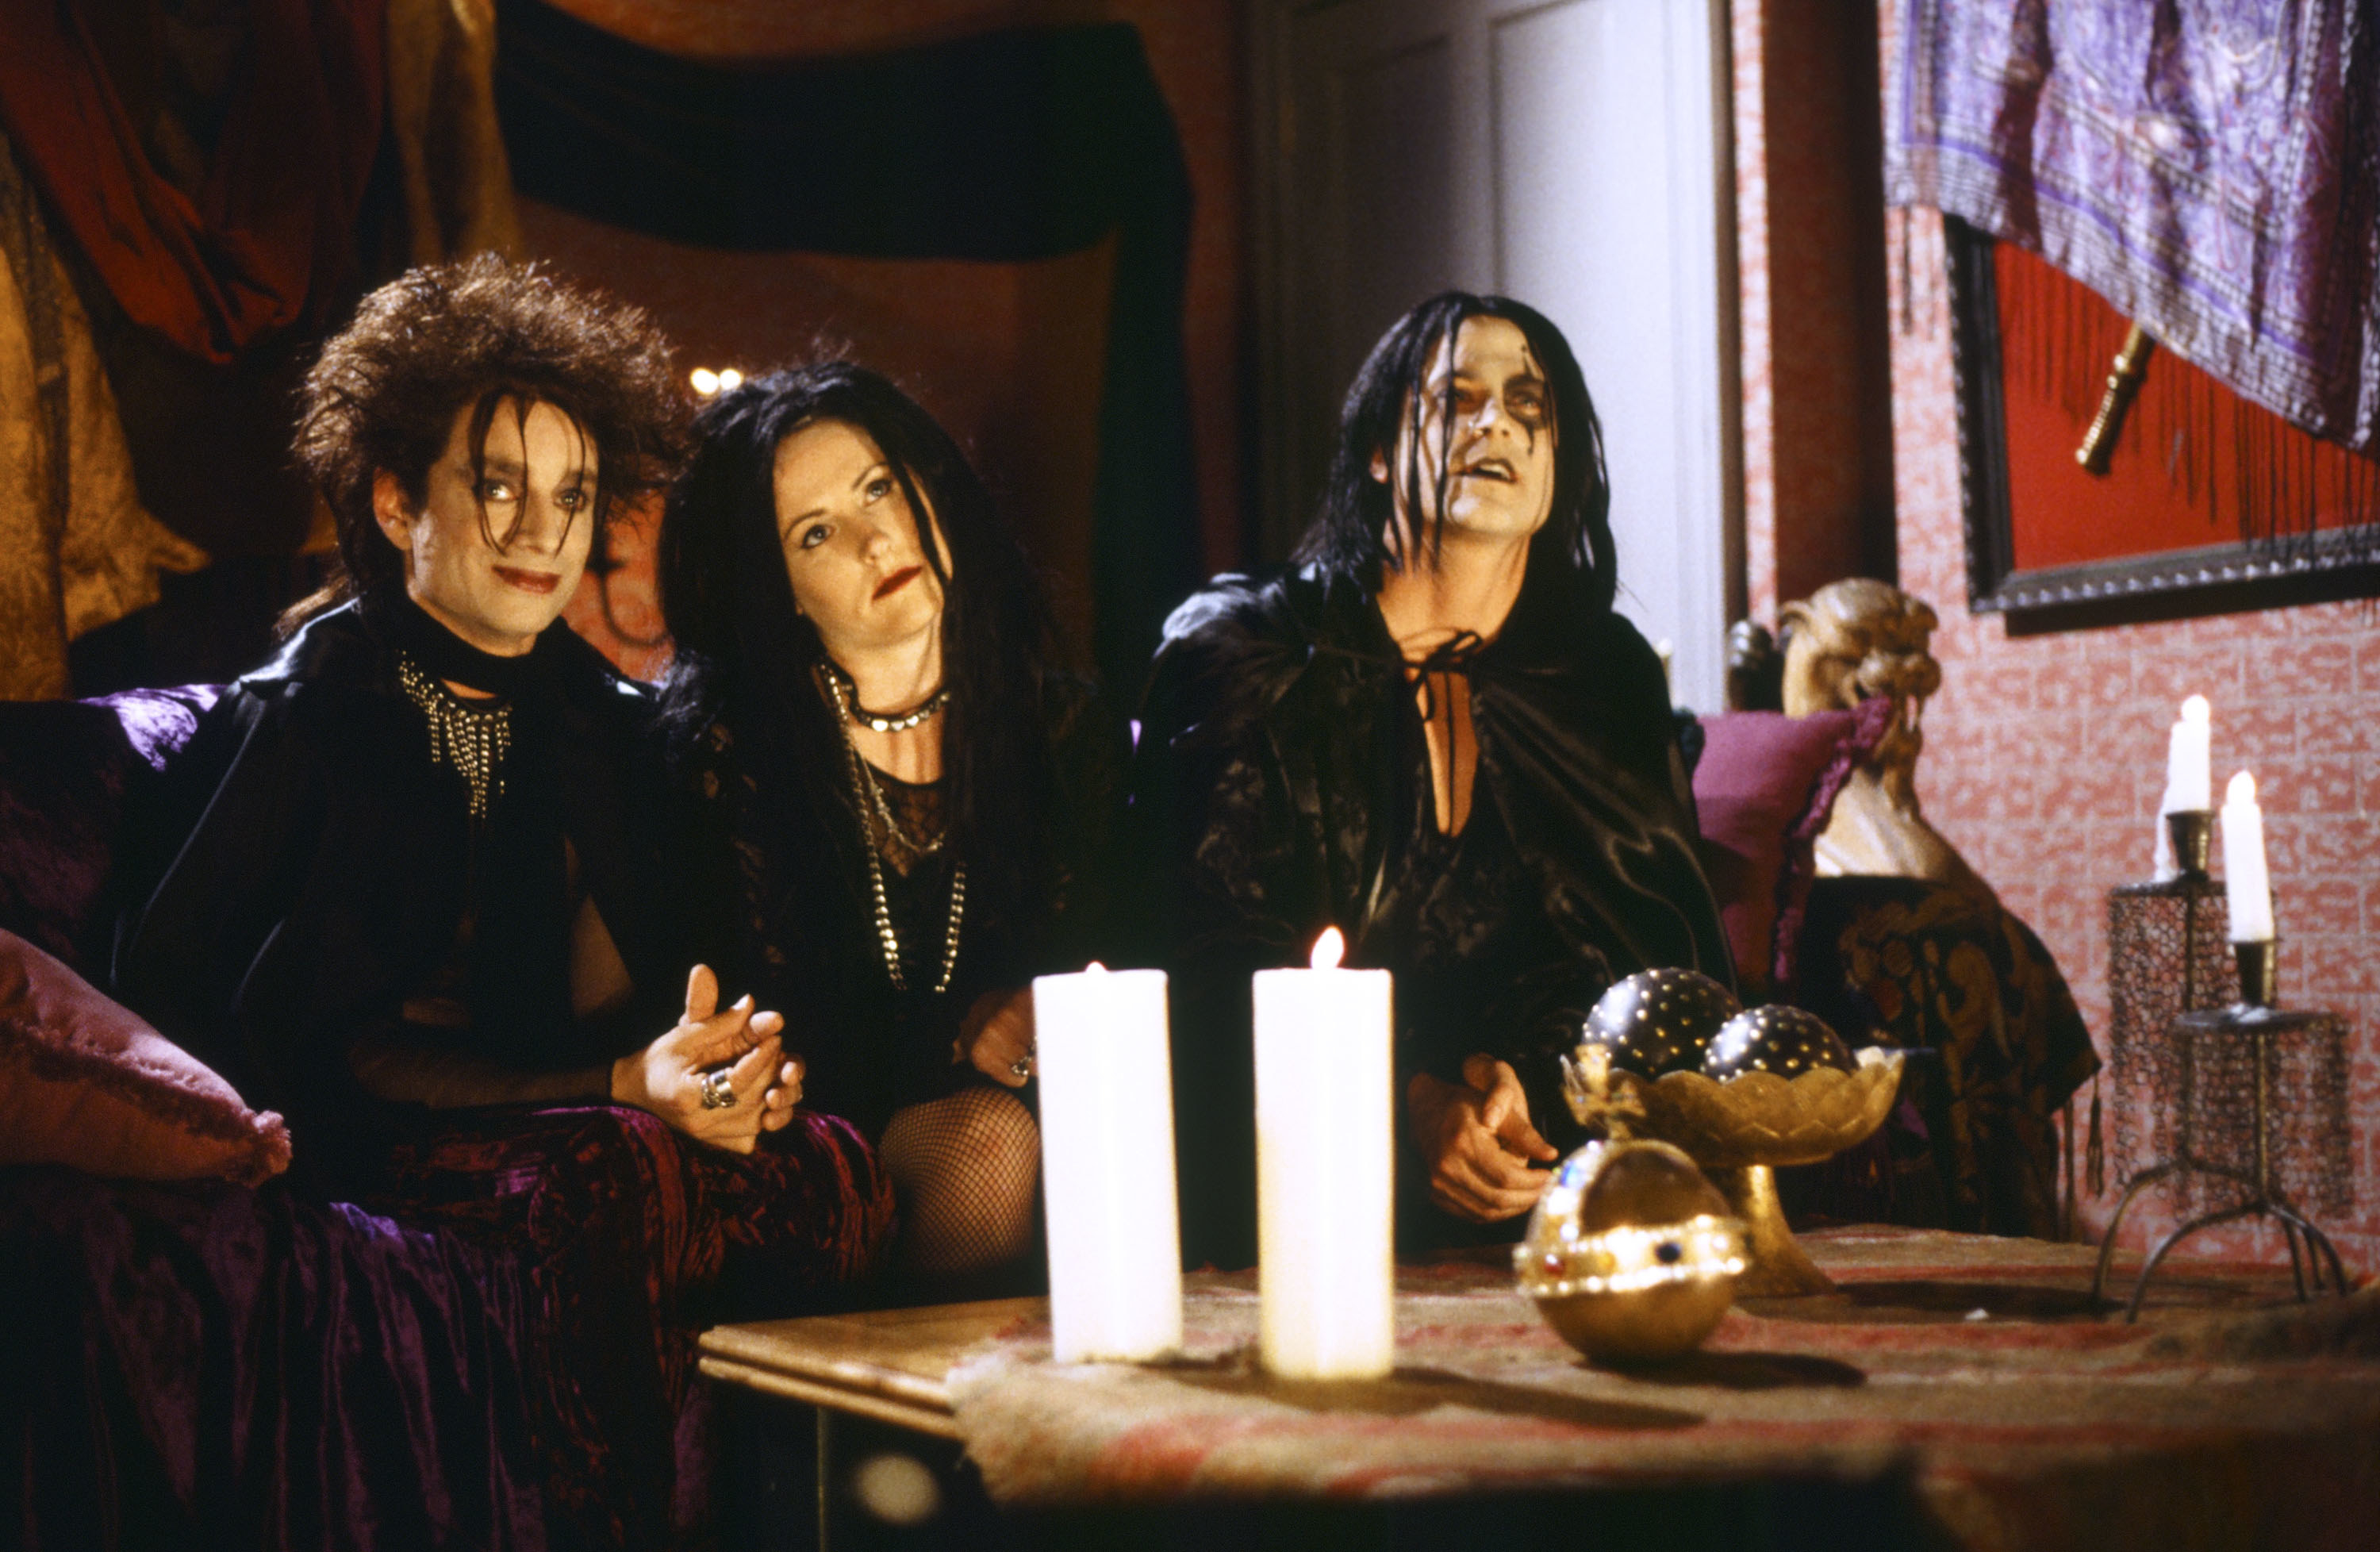 Chris Kattan as Azrael Abyss, Molly Shannon as Circe Nightshade, Rob Lowe as The Beholder during the 'Goth Talk' skit